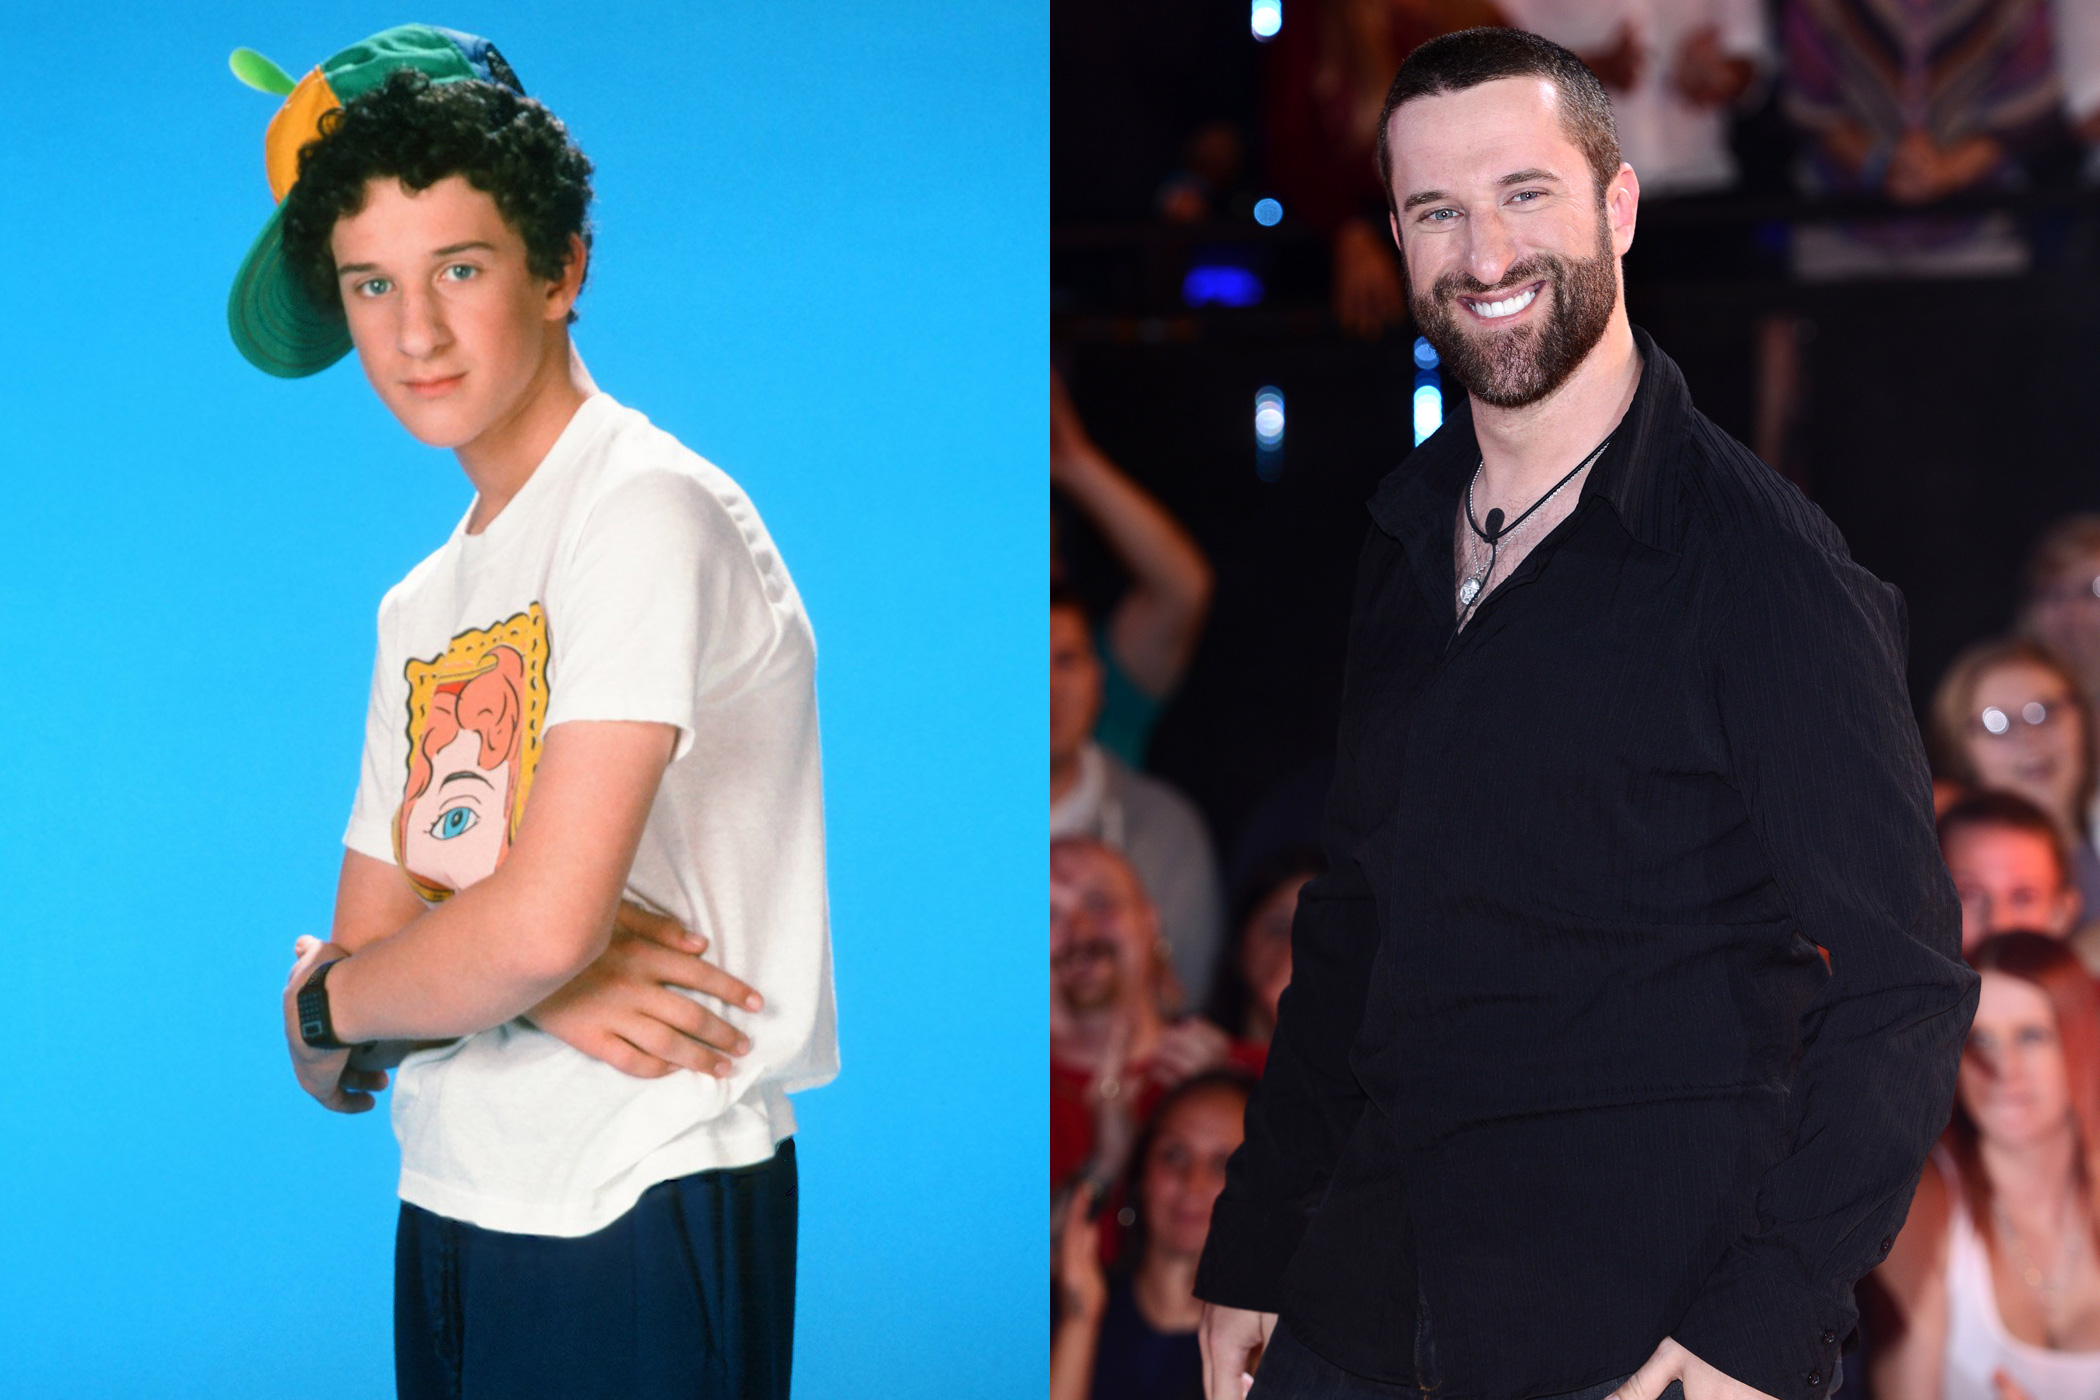 Dustin Diamond, Screech: He has made a career out of his strange relationship with <i>Saved by the Bell</i>. In 2006, Diamond released his own sex tape called <i>Screeched —Saved by the Smell</i>. He also published a gossipy tell-all of cast members' drug use and hookups called <i>Behind the Bell</i>, now a movie.